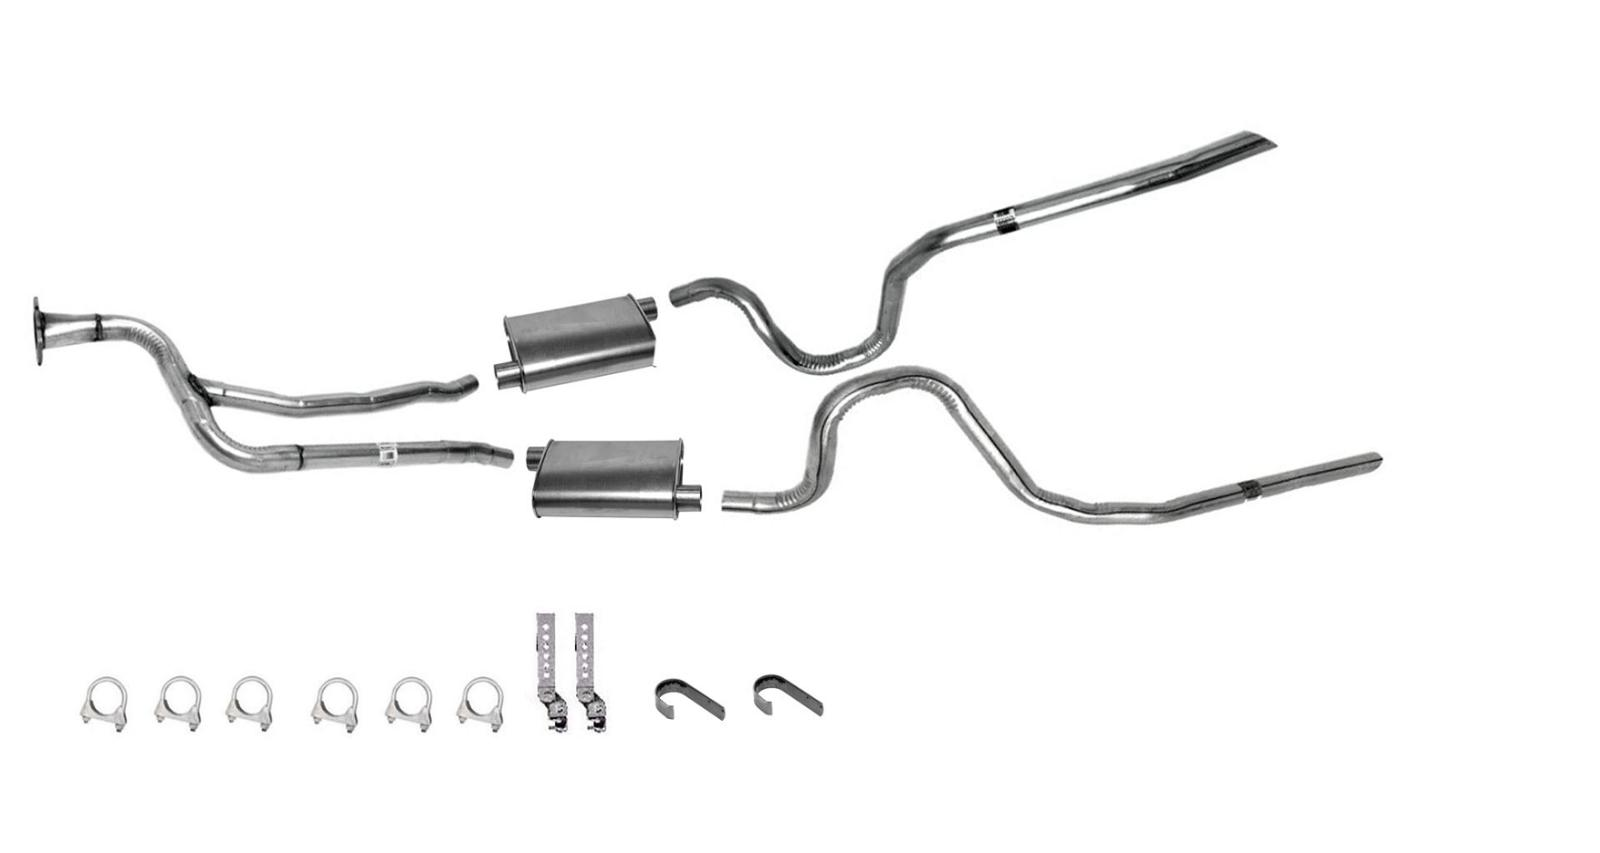 P 0996b43f80cb0da8 additionally Afe Power Introduces Ford Raptor Long Tube Headers With Y Pipe 48 33002yc as well Electric Heat Wiring Diagram also P 0996b43f80378488 in addition 434594 The Definitive Sc400 Exhaust Guide. on exhaust y pipe